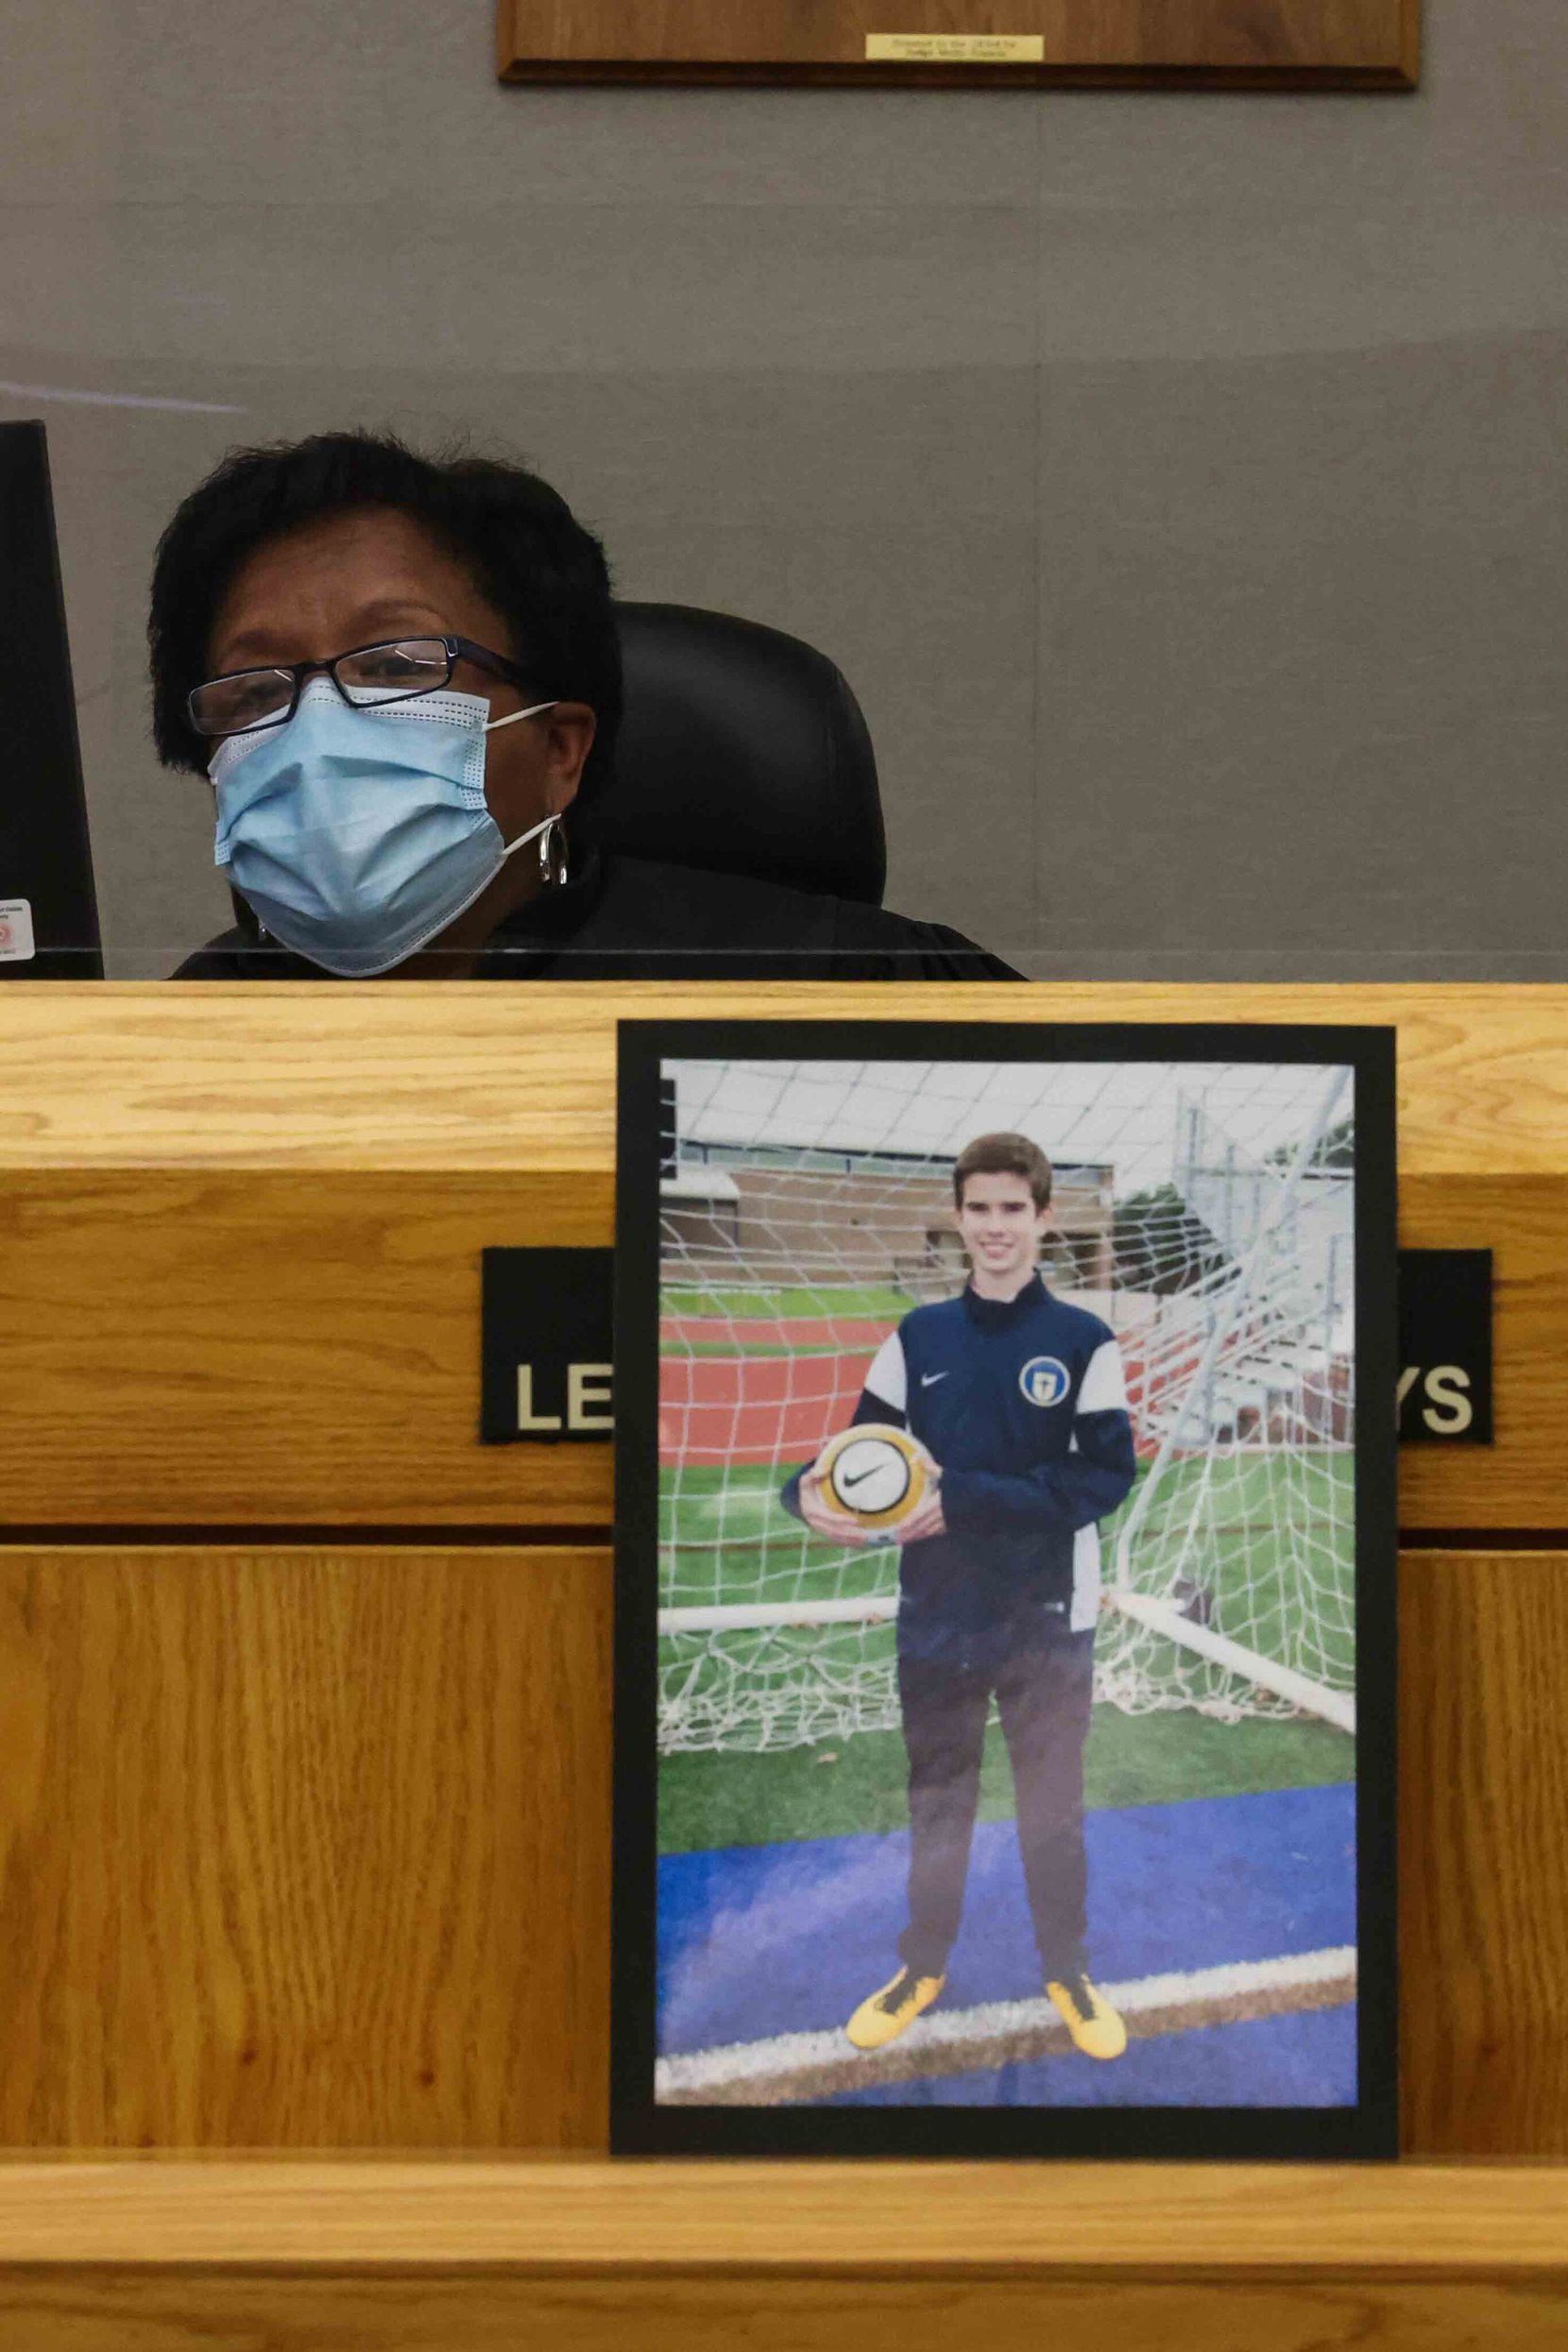 State District Judge Lela Mays heard testimony in Dallas on Wednesday to determine the sentence for Terrelwin Jones, who is charged with manslaughter in the wreck that killed 15-year-old Guy Delaney.